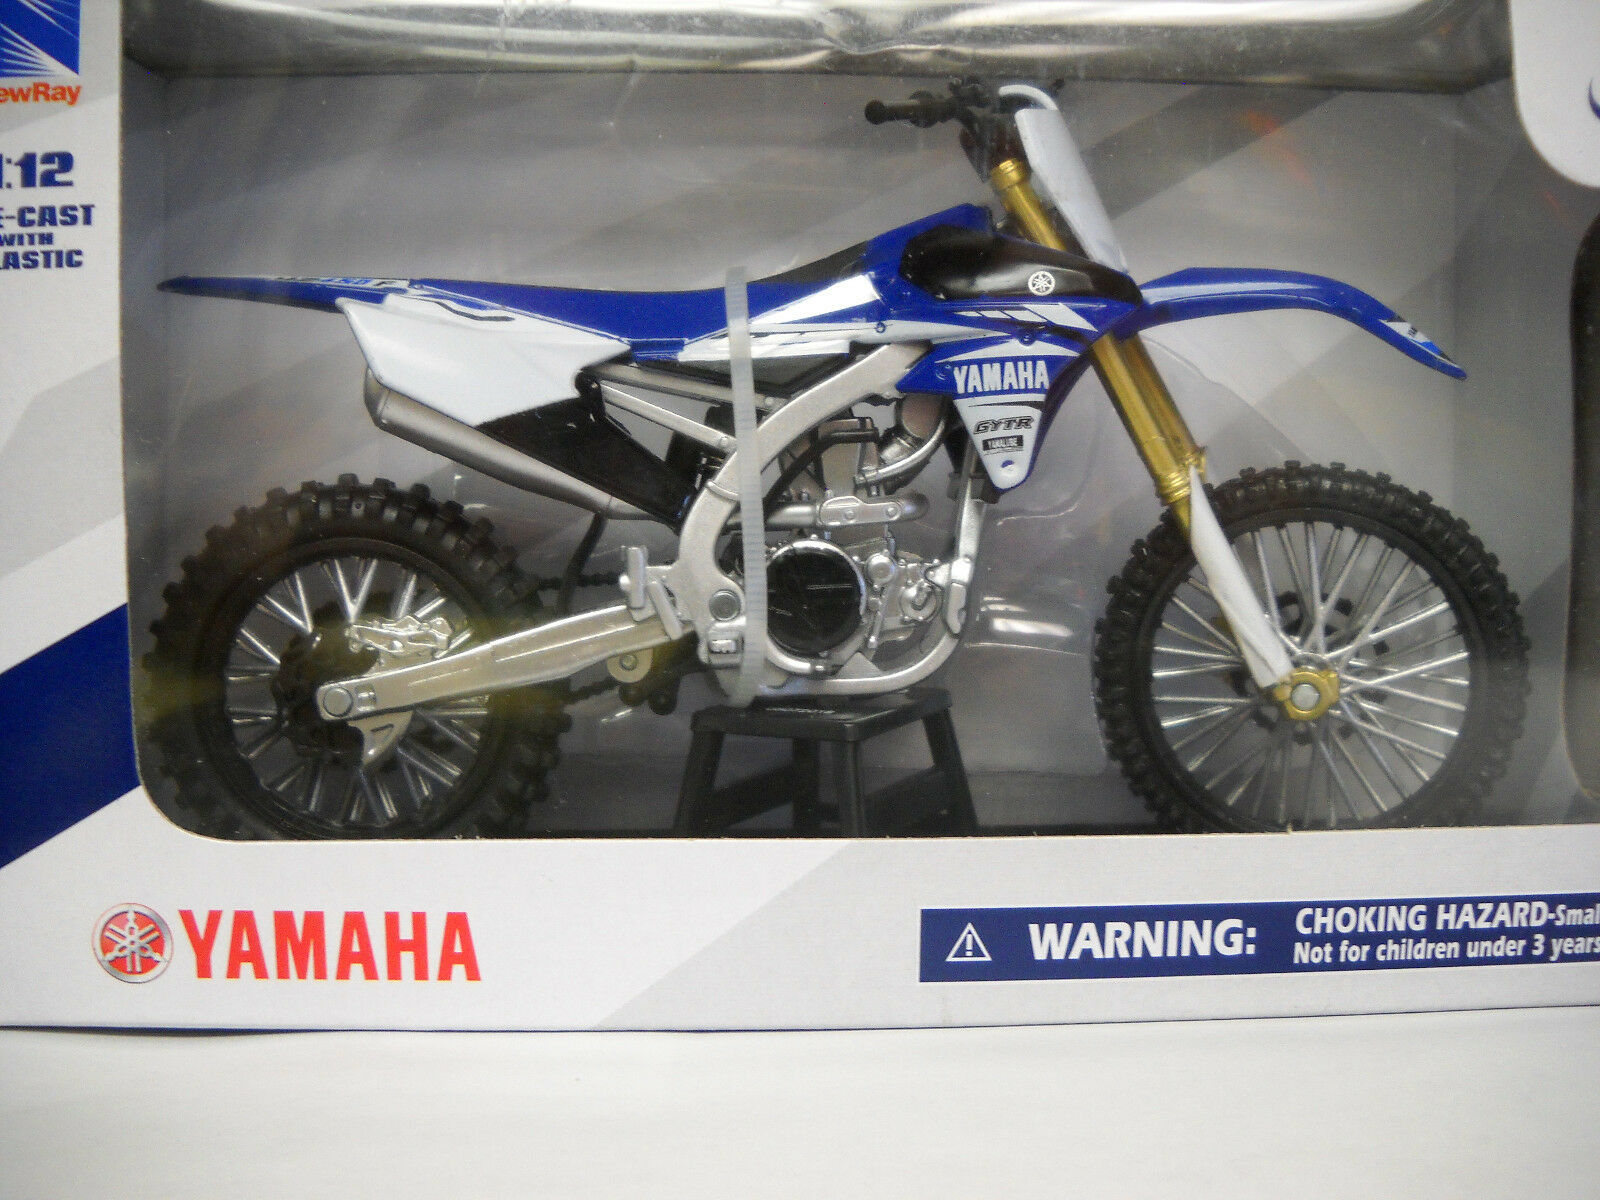 Yamaha YZ450F 2017 1/12 Motorcycle Model Dirt Bike Toy by Ne